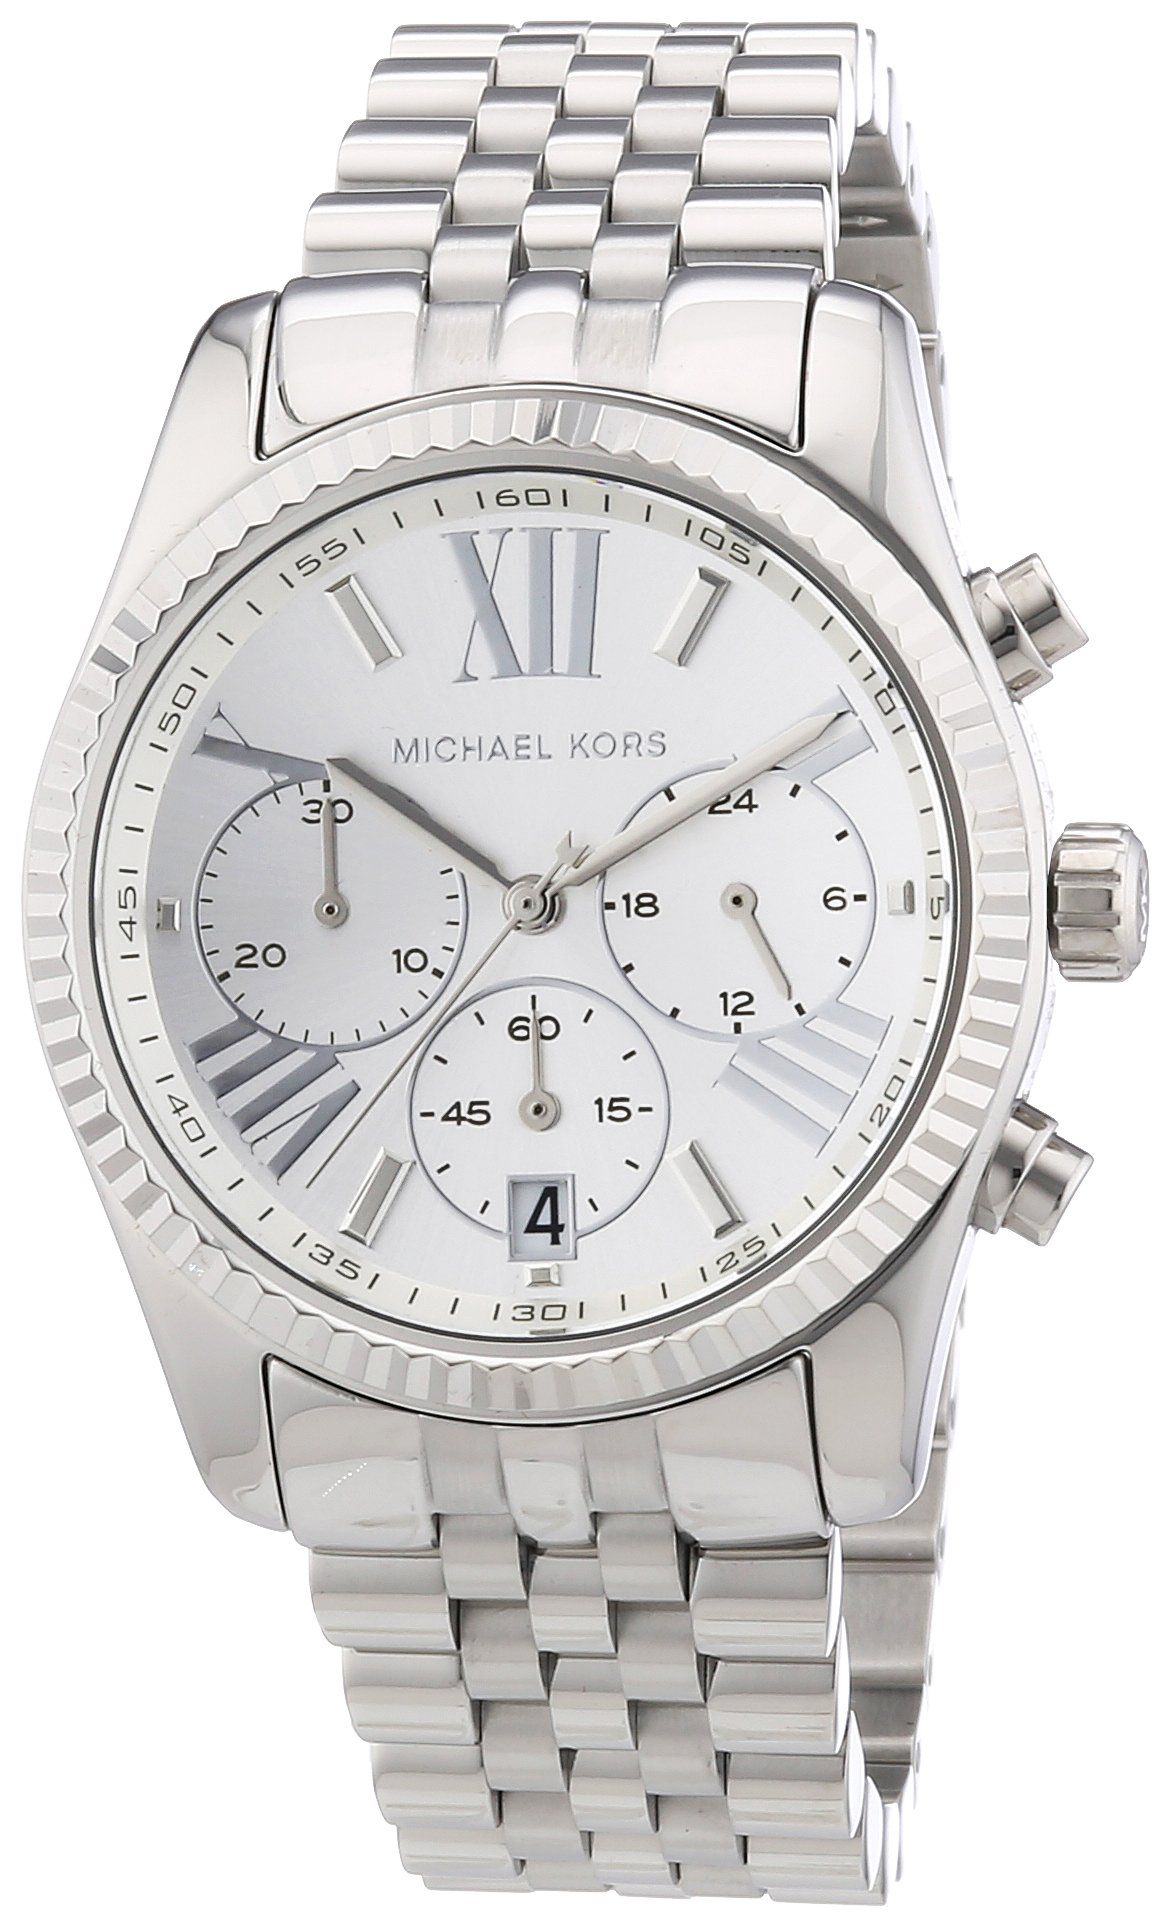 Michael kors damen armbanduhr lexington chronograph